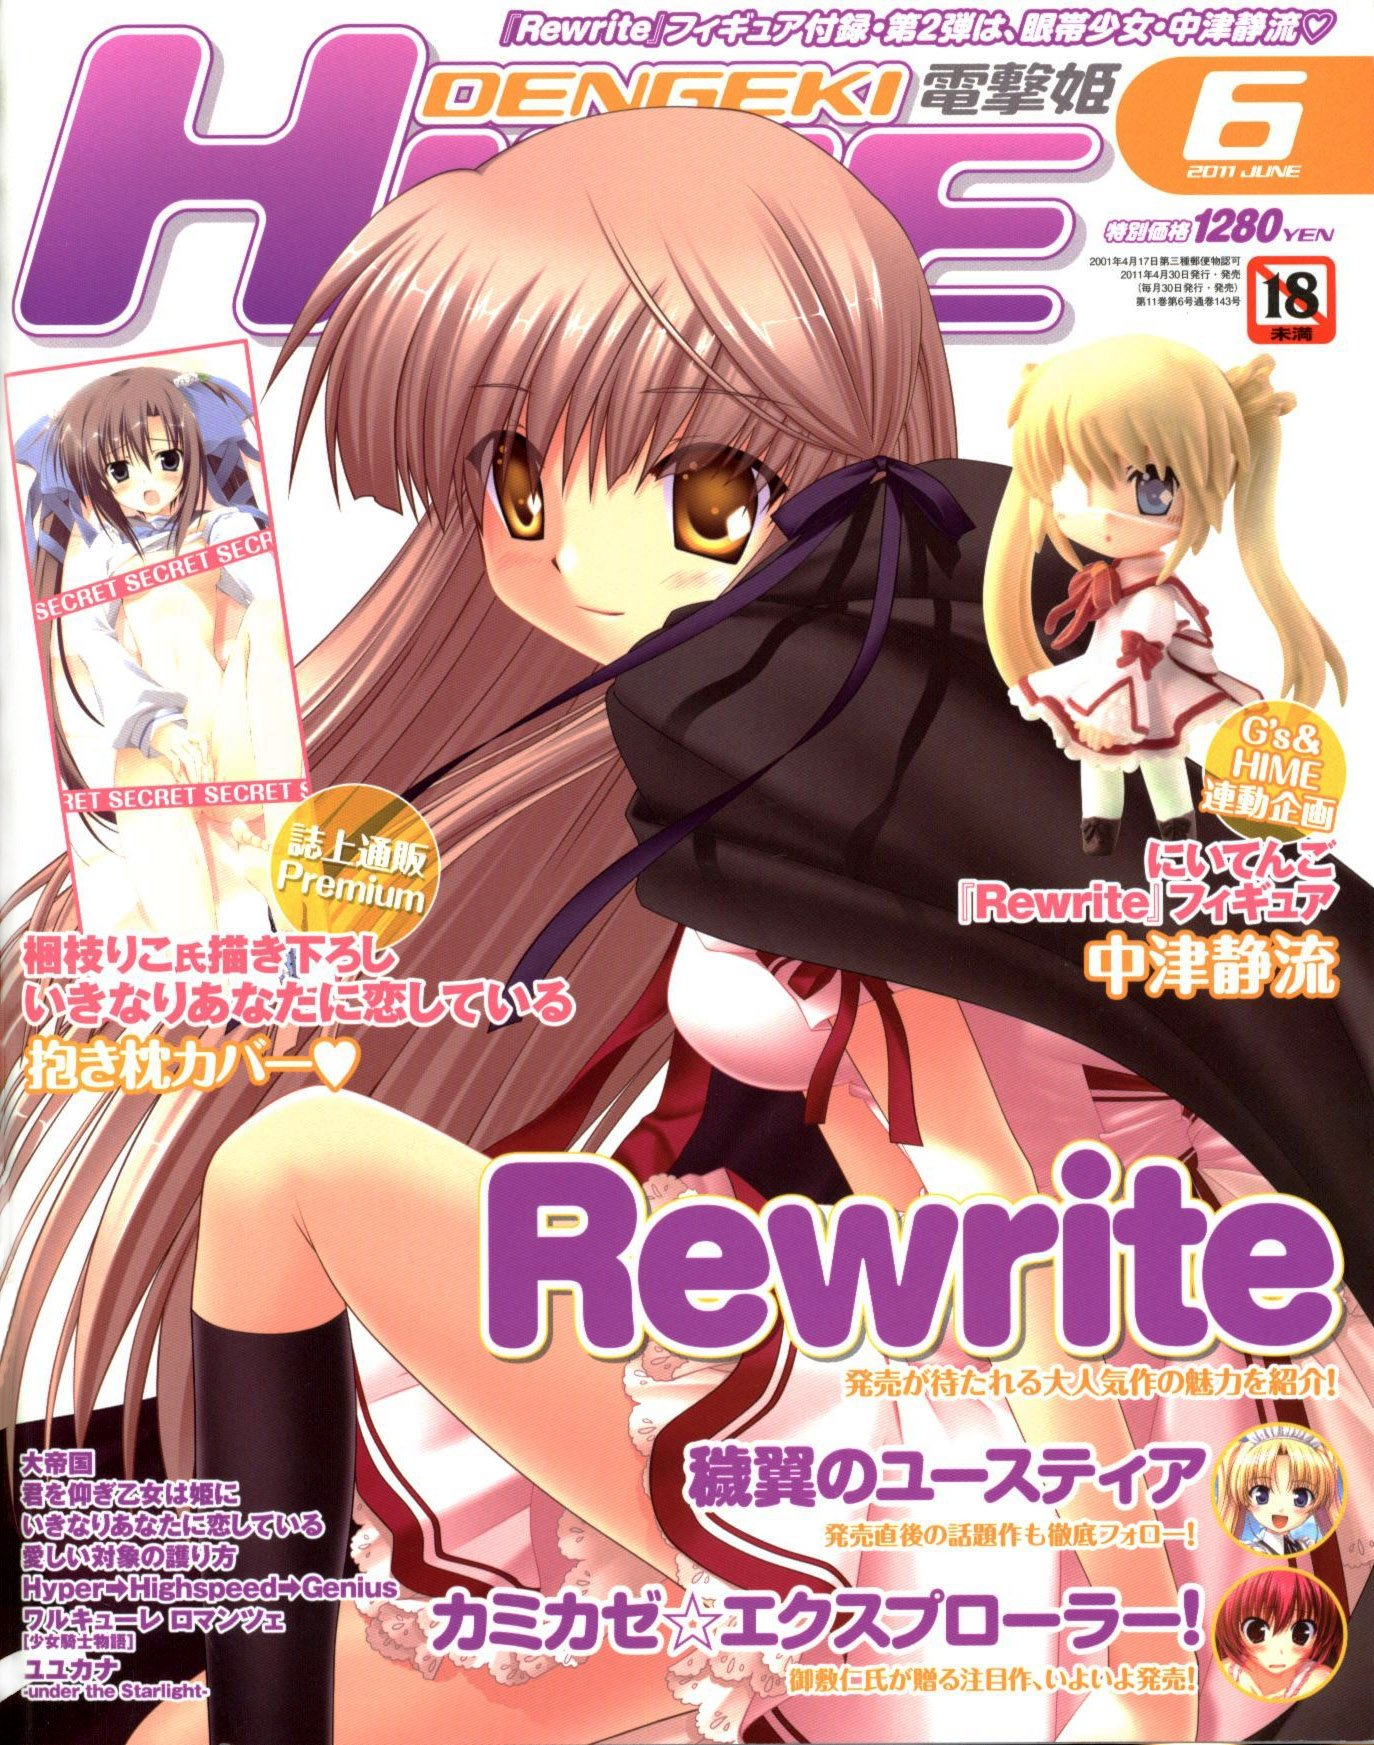 Dengeki Hime Issue 135 (June 2011)